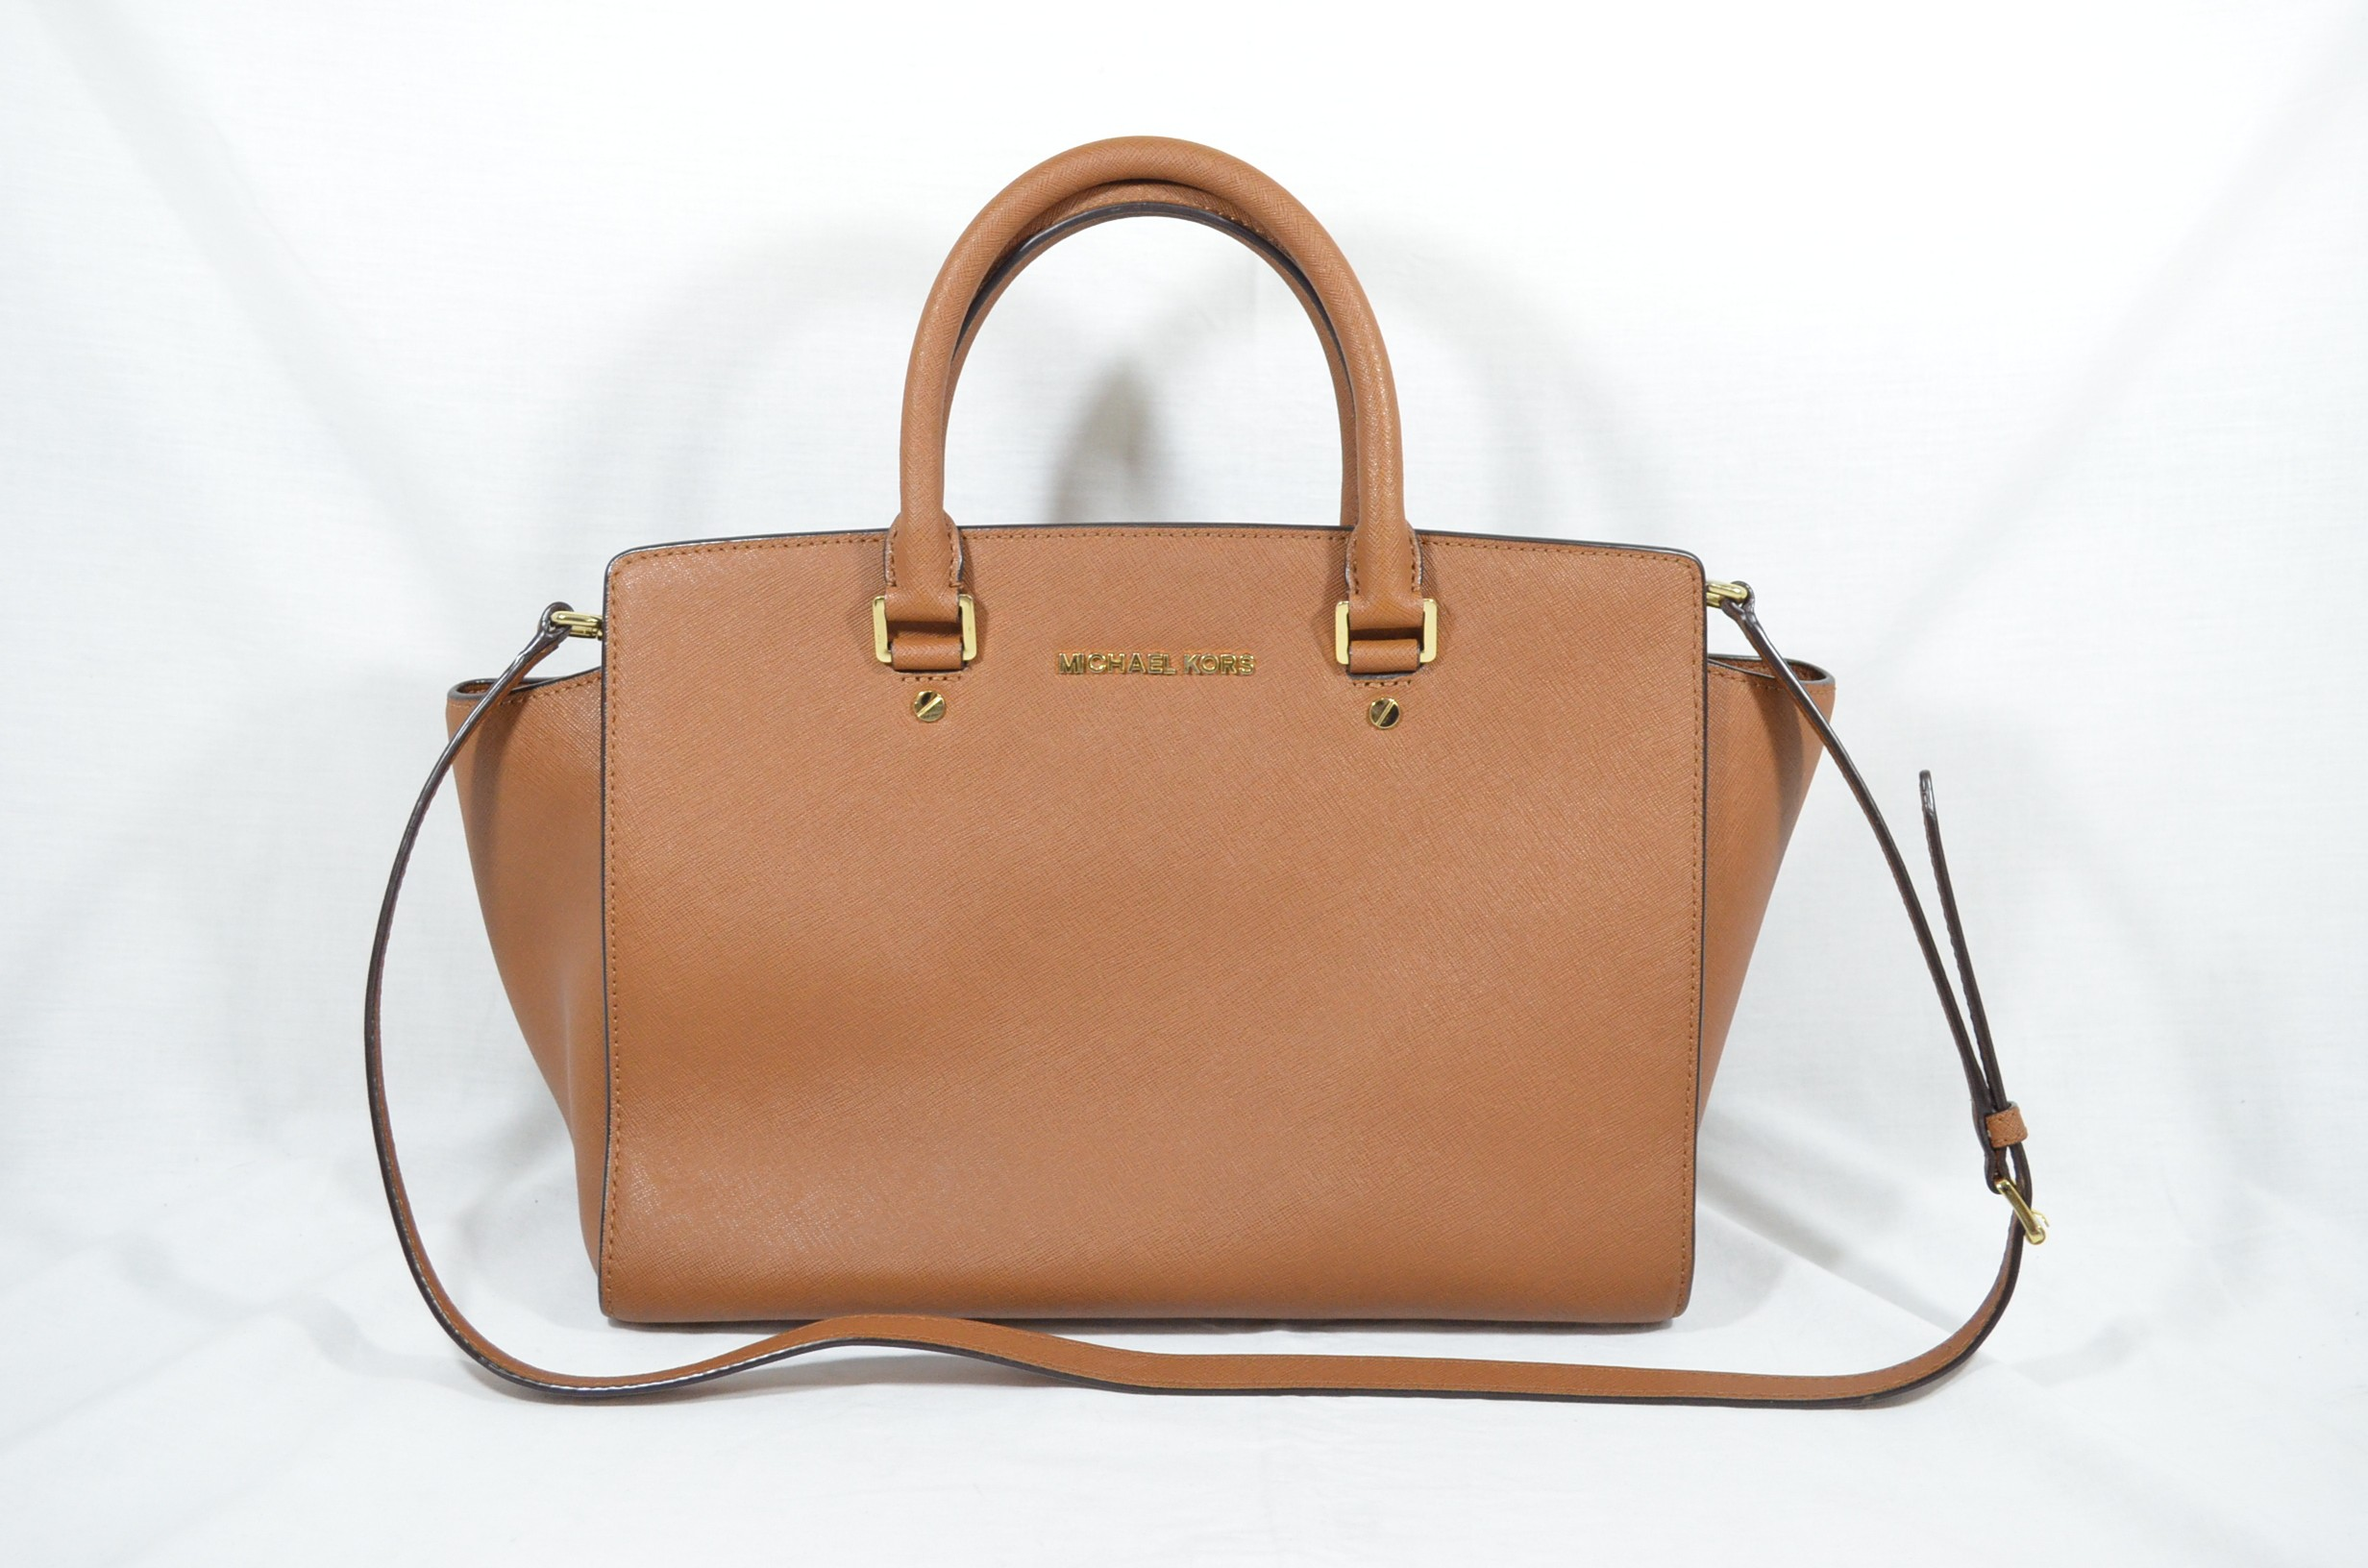 lightbox moreview · Michael Kors Large Selma Top-Zip Satchel Luggage  Saffiano leather Tote Bag e33d3db92cc